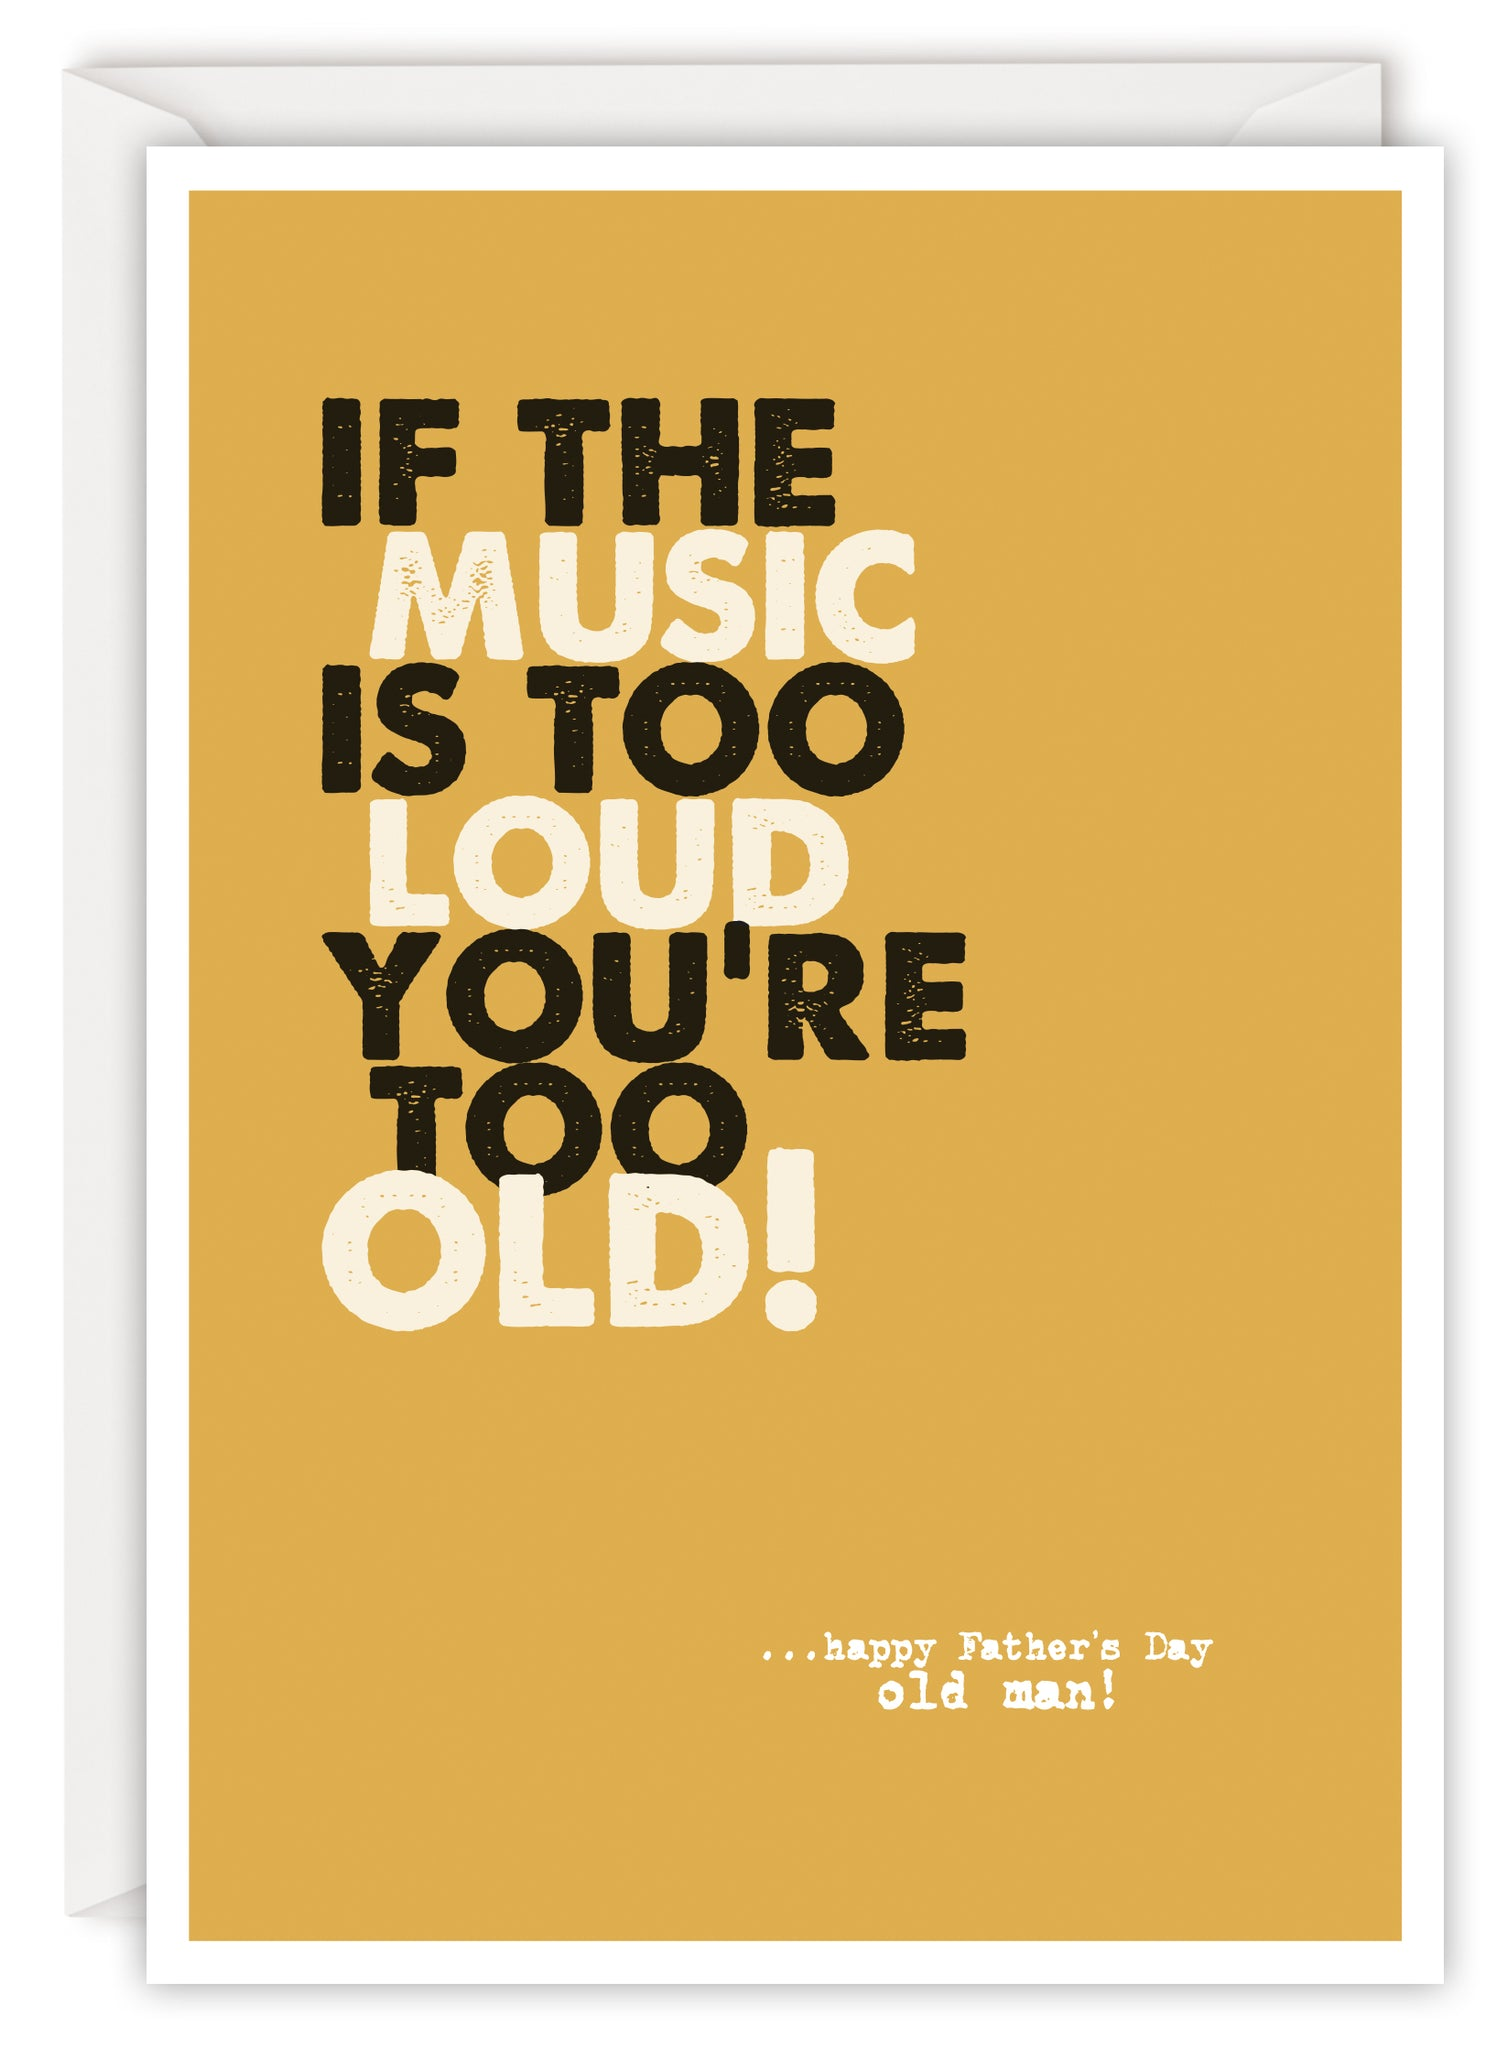 If the music is too loud you're too old!